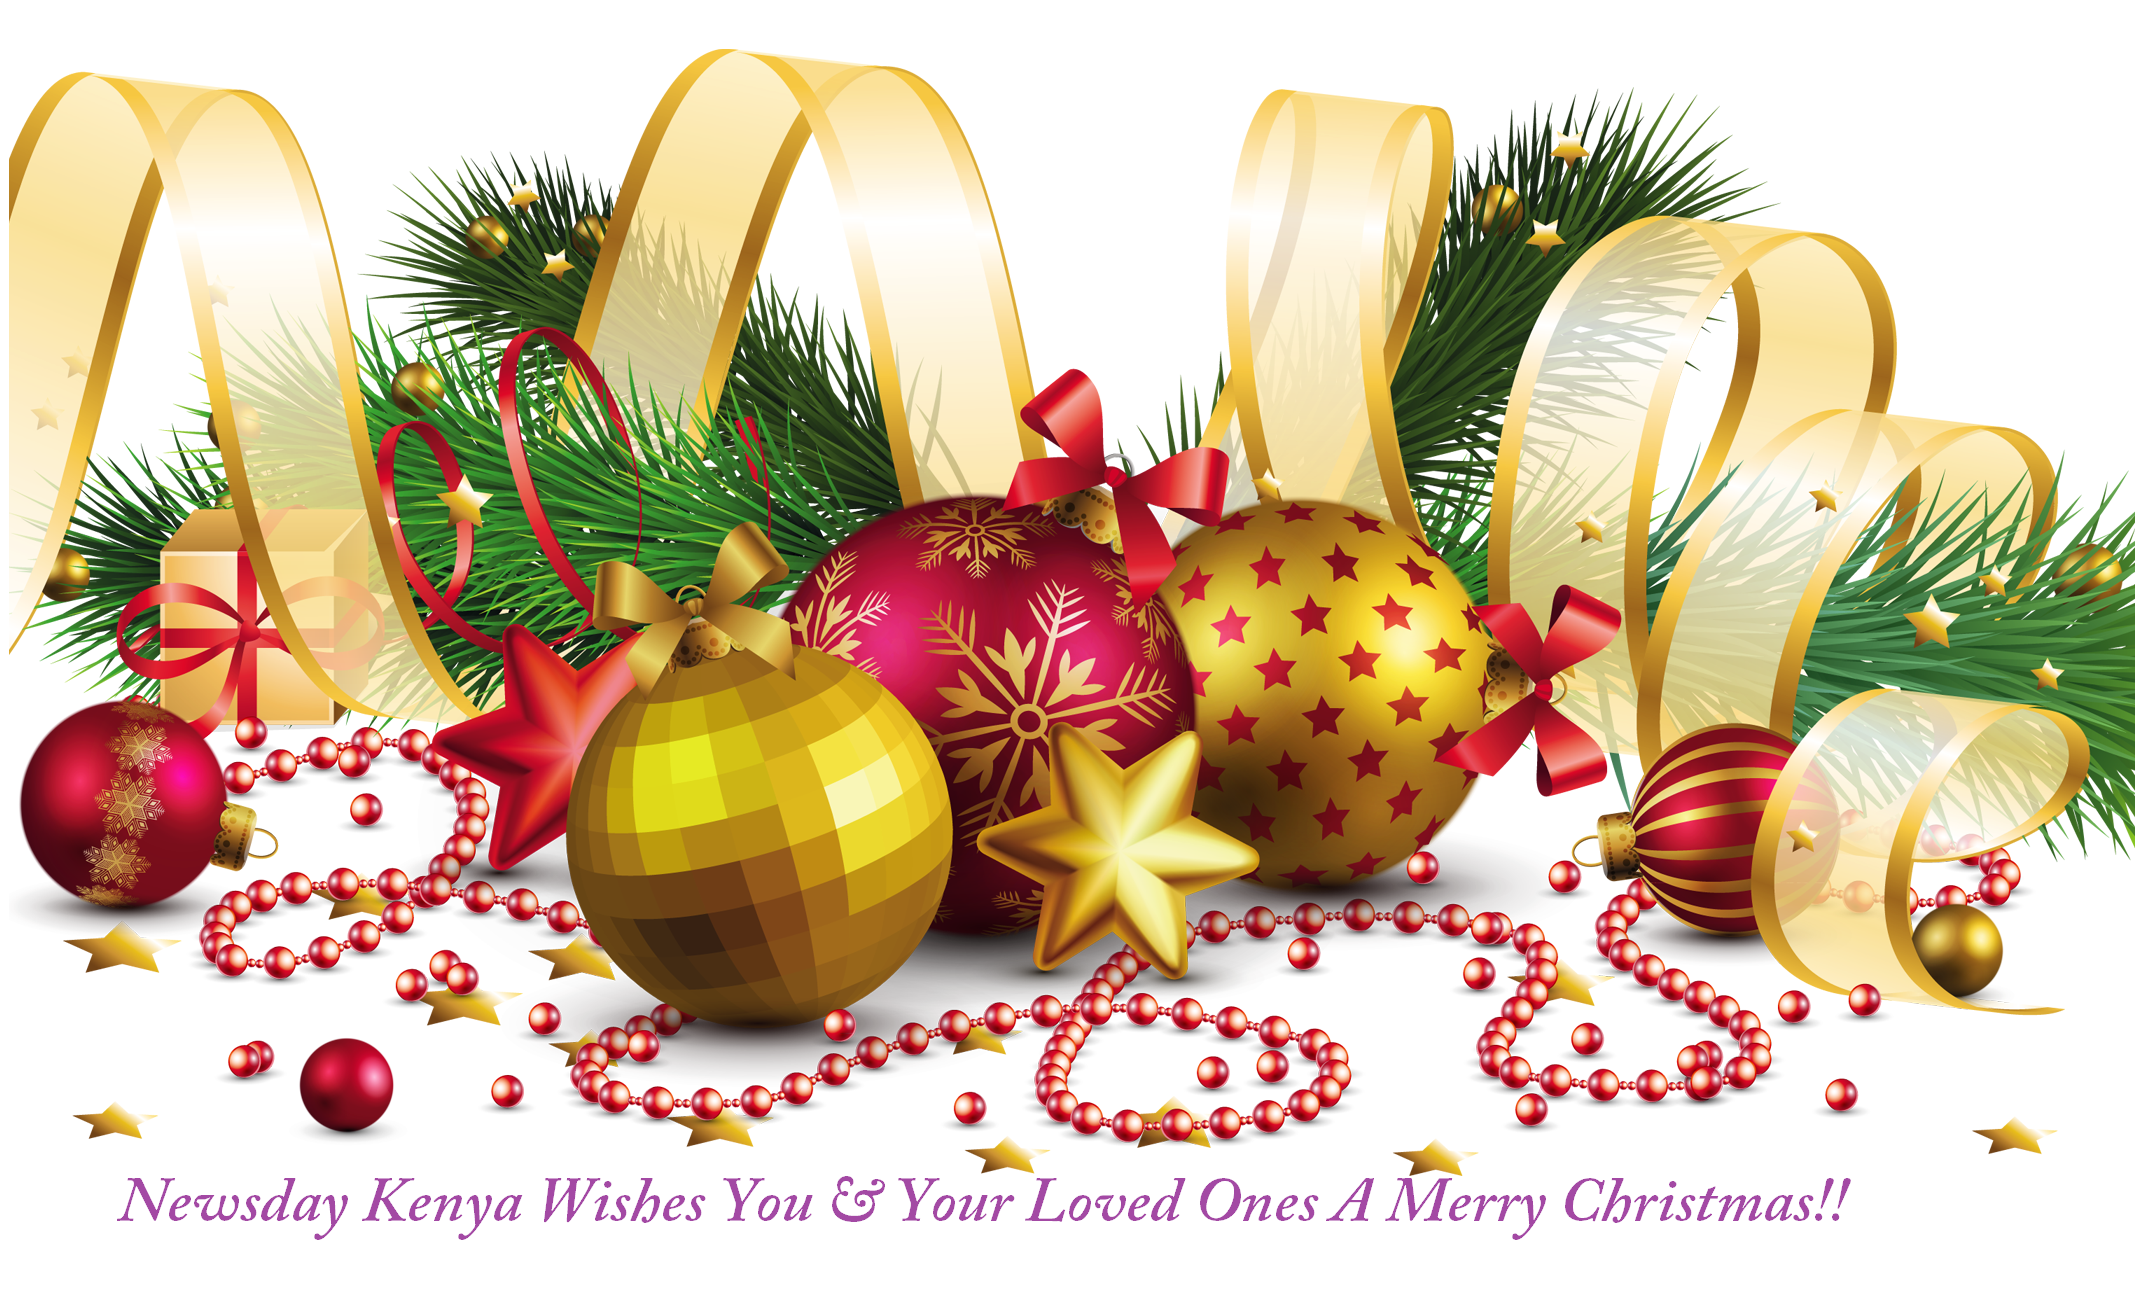 wishing you and your loved ones merry christmas